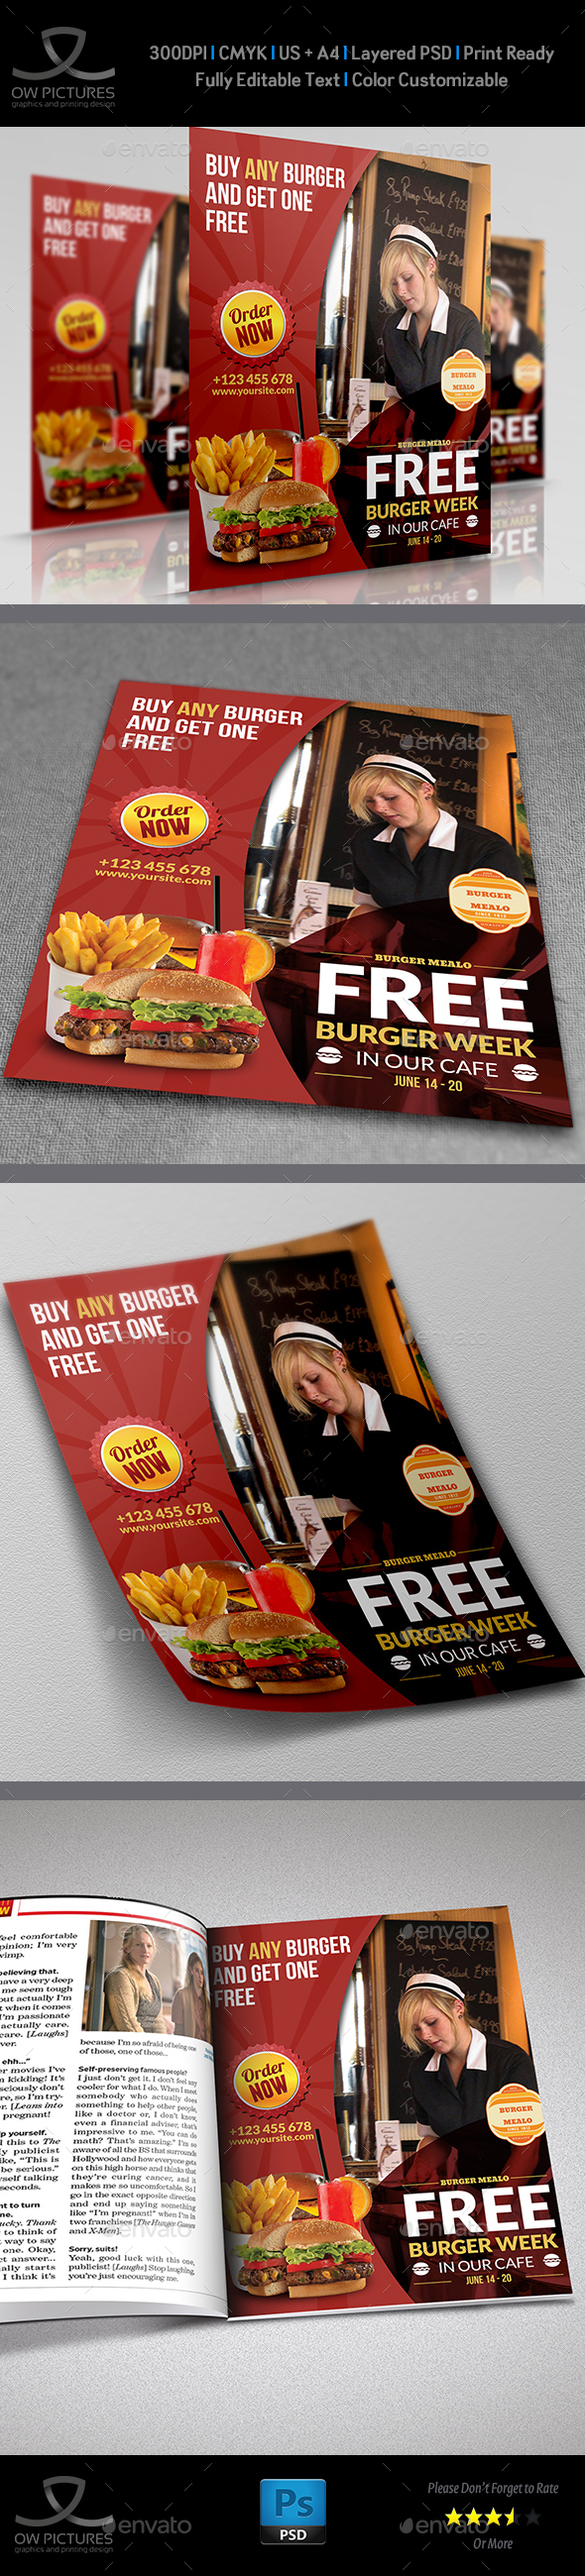 Burger Restaurant Flyer Template Vol.4 - Restaurant Flyers